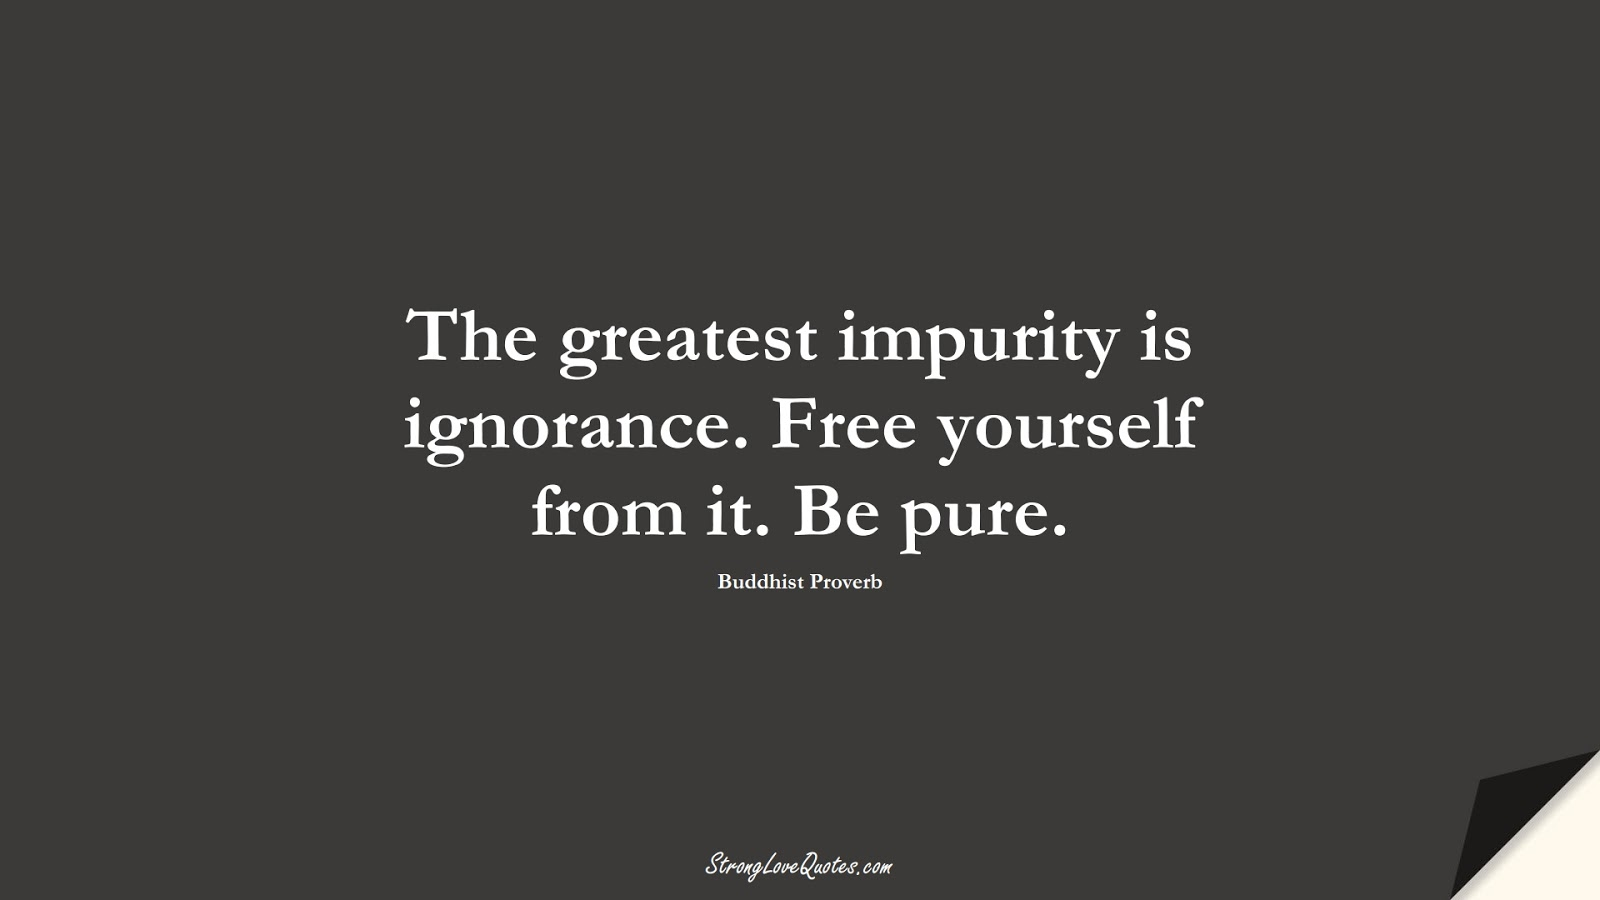 The greatest impurity is ignorance. Free yourself from it. Be pure. (Buddhist Proverb);  #KnowledgeQuotes